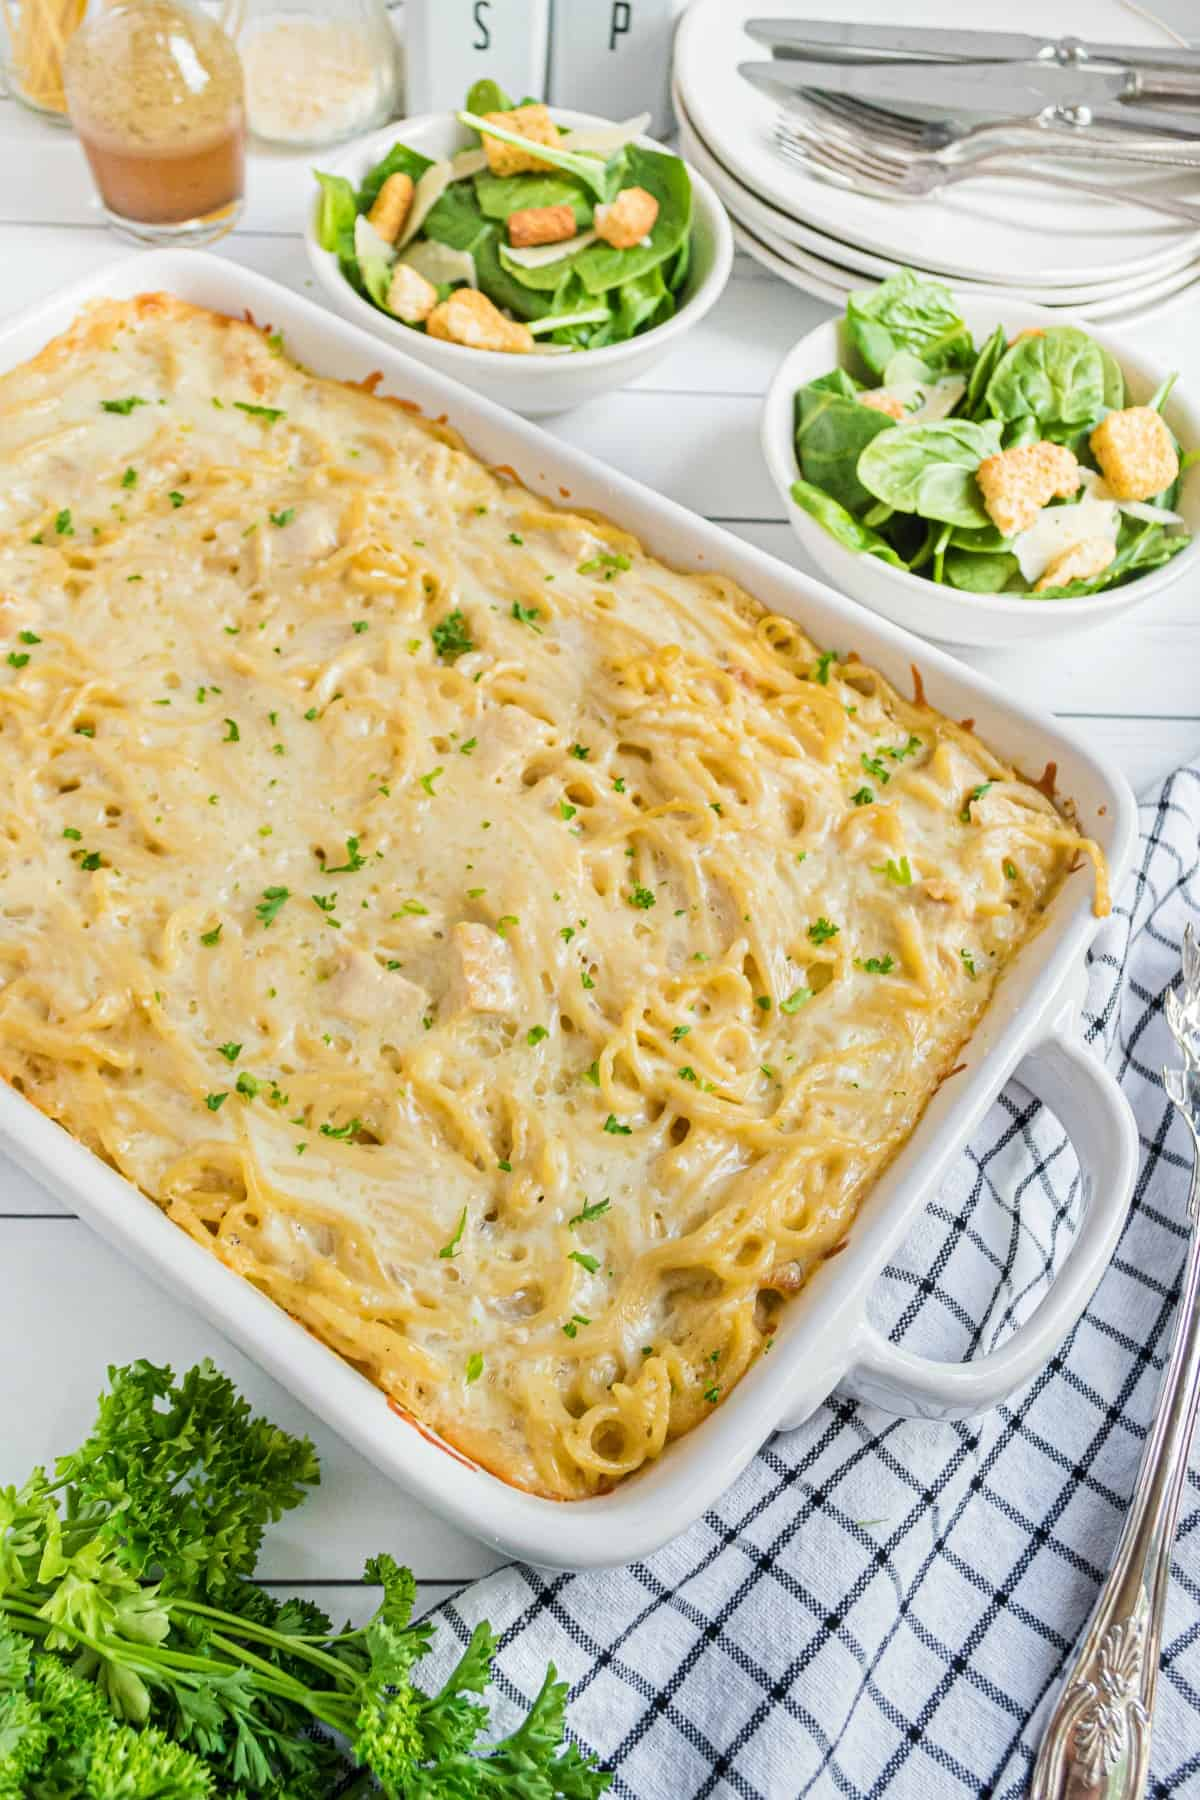 Chicken tetrazzini baked in a white 13x9 dish and served with a green side salad.